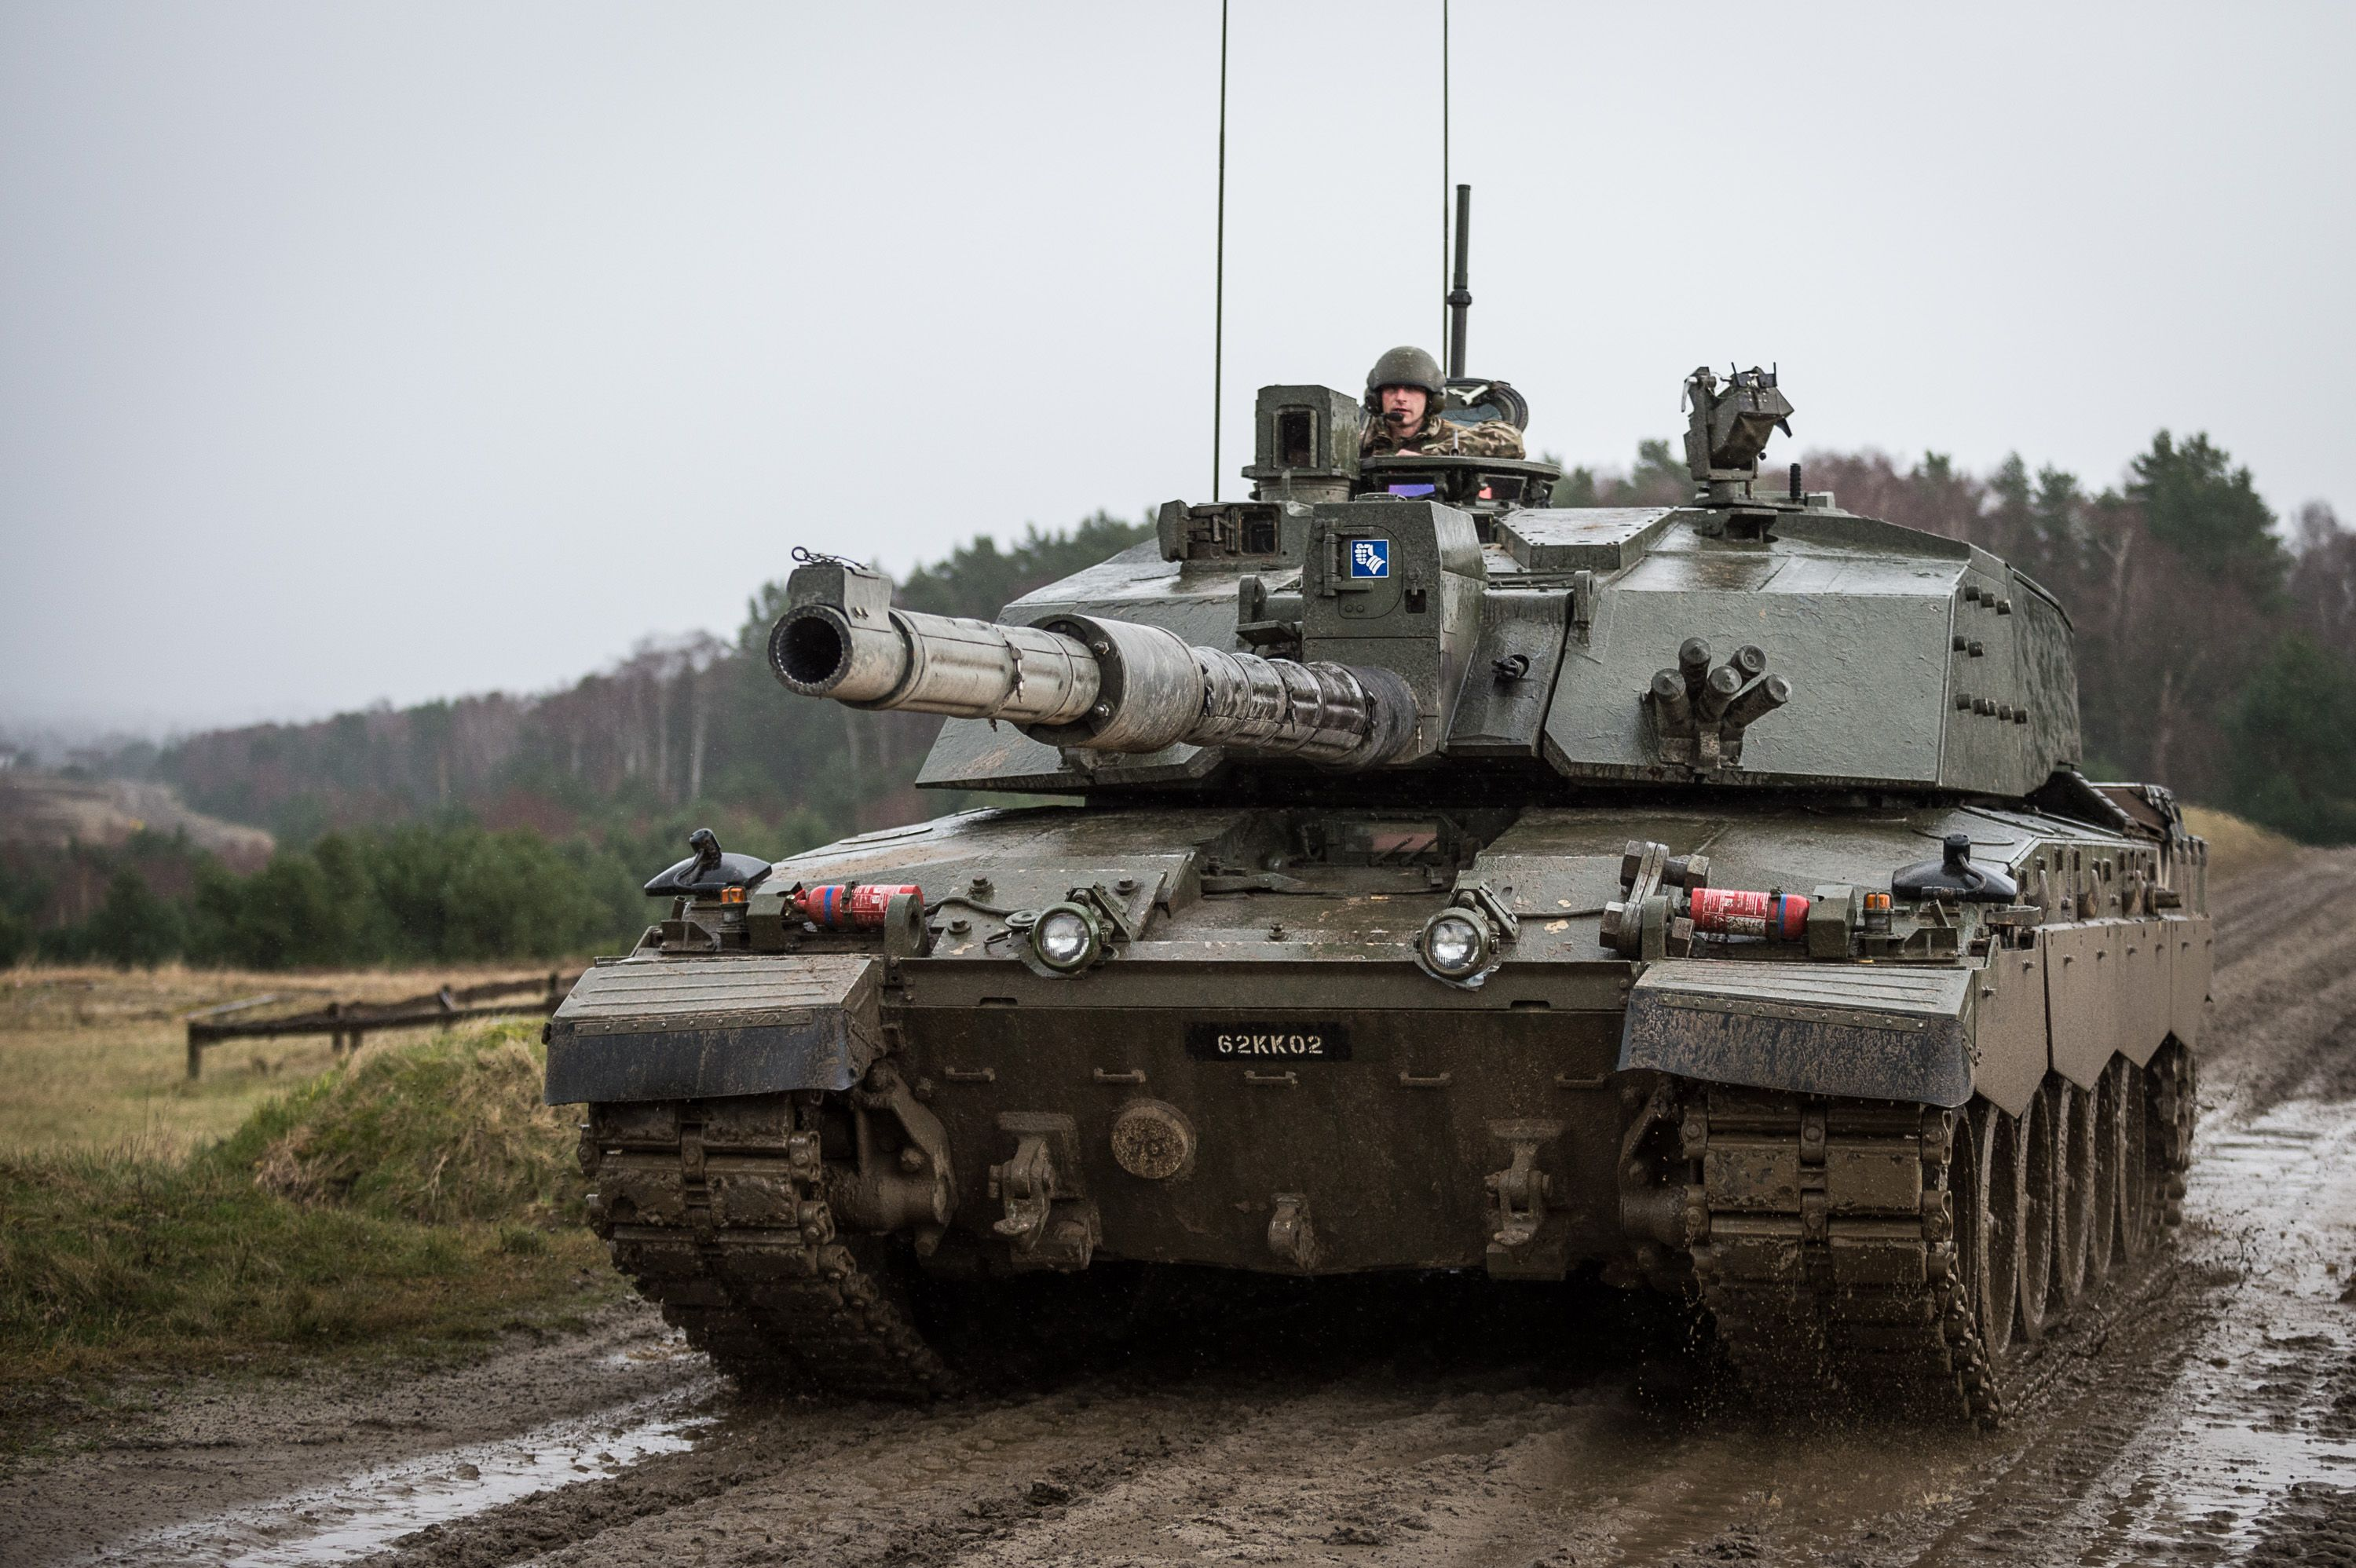 e7ed6e78f4b6 Deploying 3 Sabre Squadrons of Challenger 2 Main Battle Tank (MBT) and the  Command and Recce Squadron from their barracks in Sennelager Exercise ...